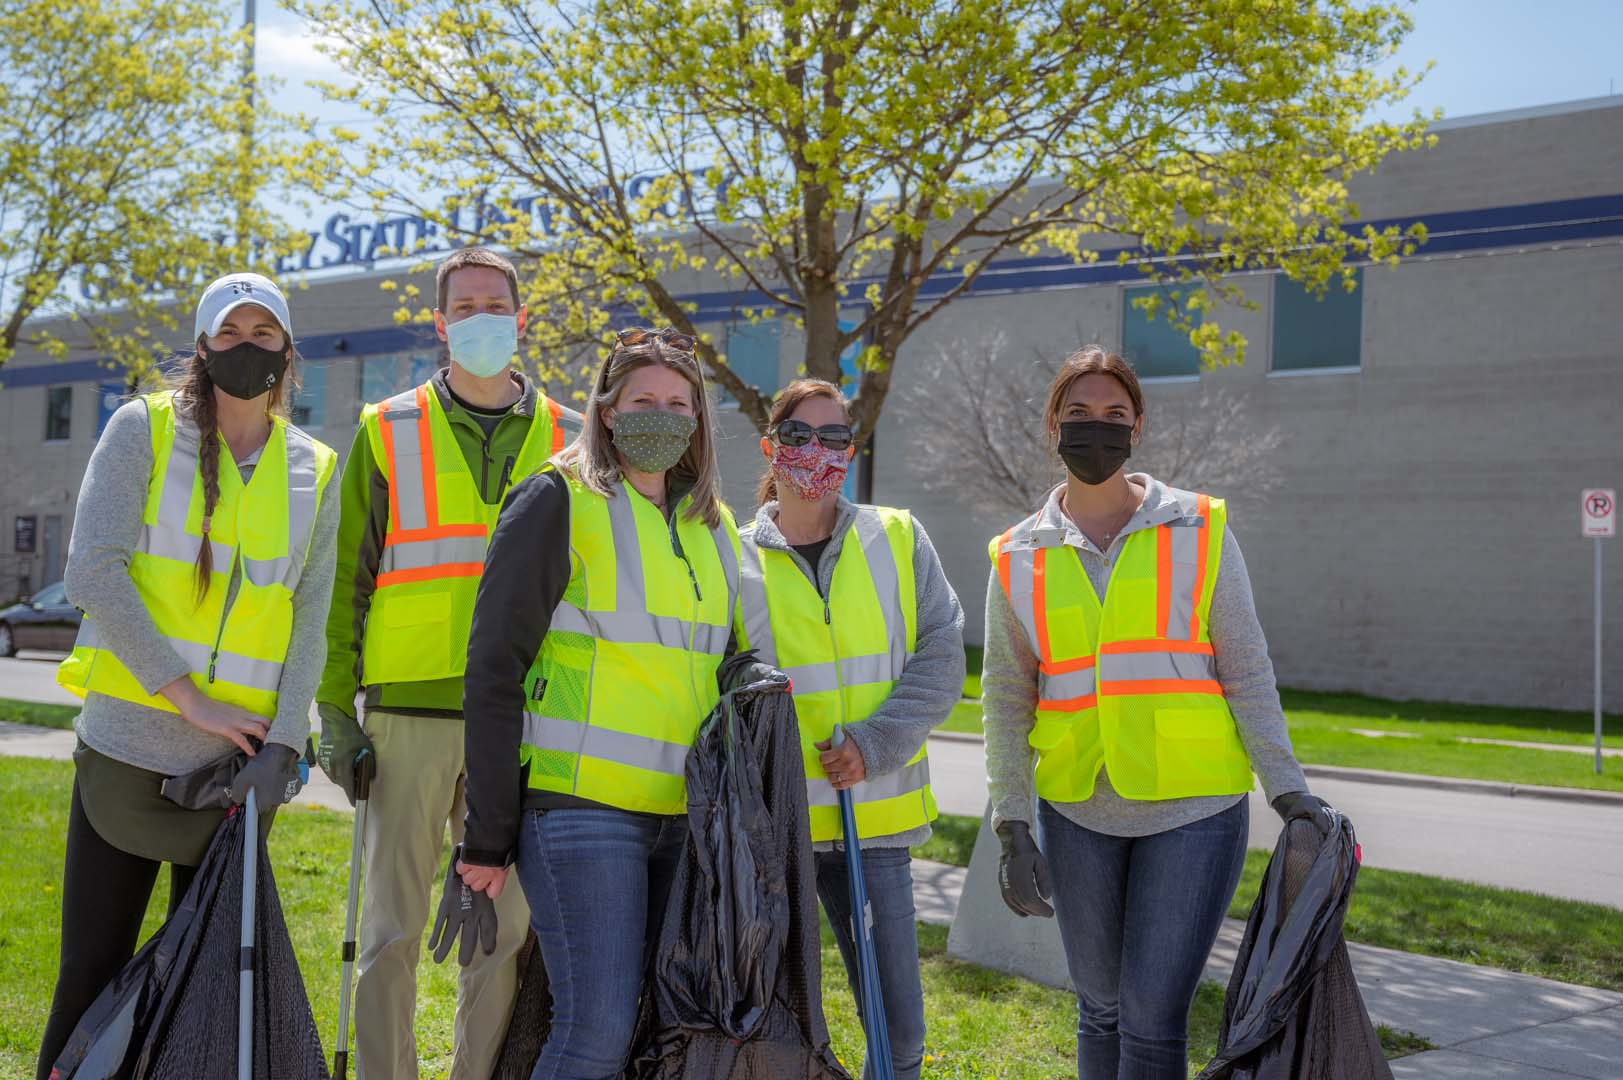 Rockford team members cleaned up trash across the West Side during a neighborhood clean-up event on April 16.